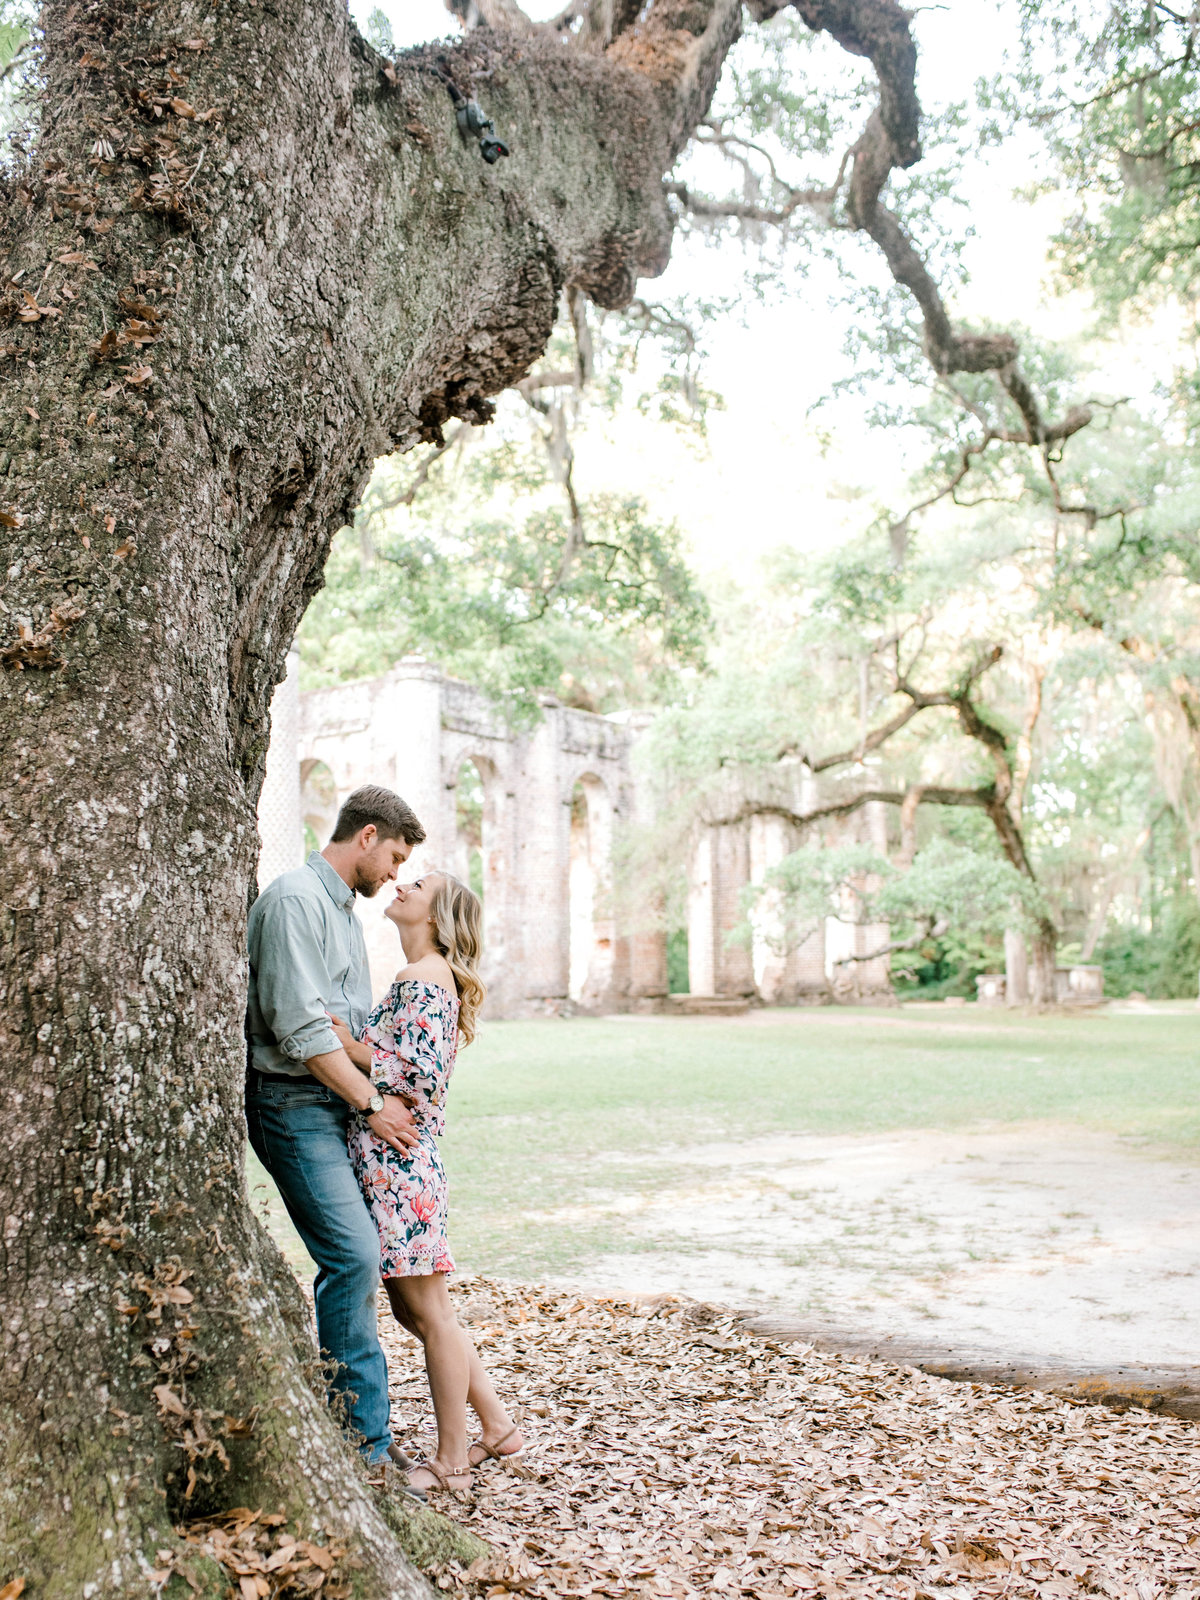 Couple leans on tree with church in background